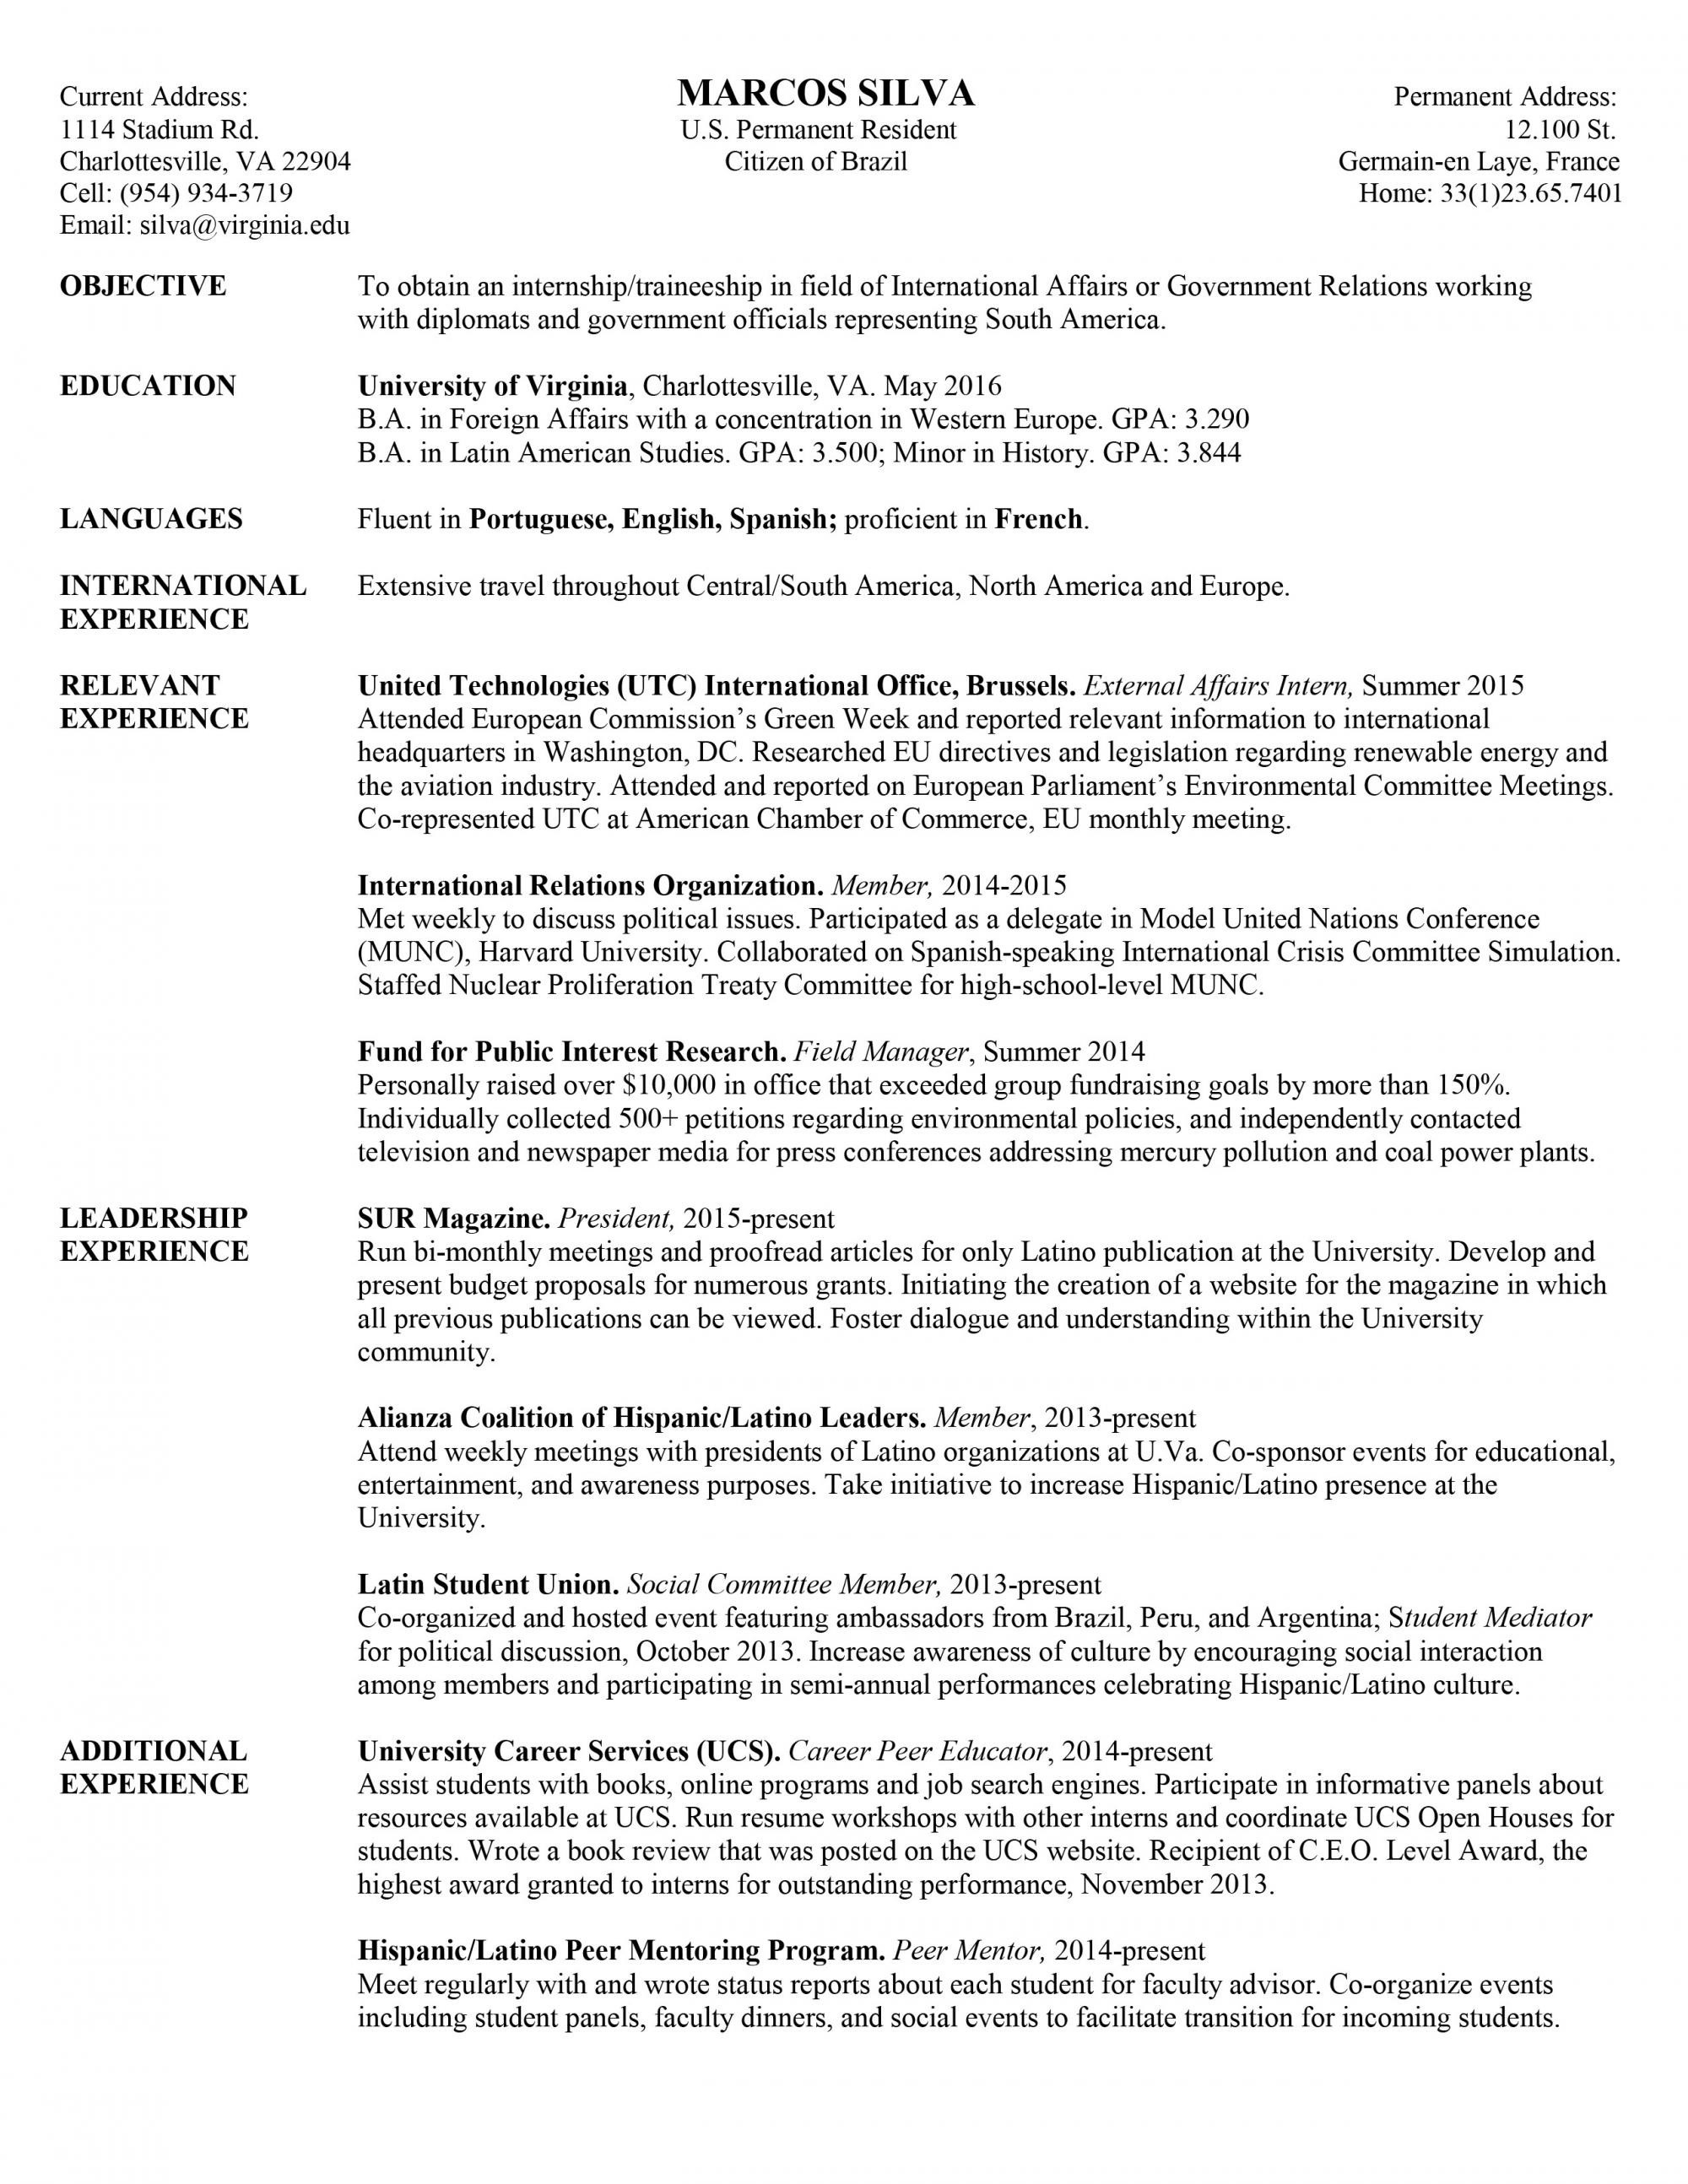 College Freshman Resume Template - Resume for College Freshmen Best Sample College Freshman Resume